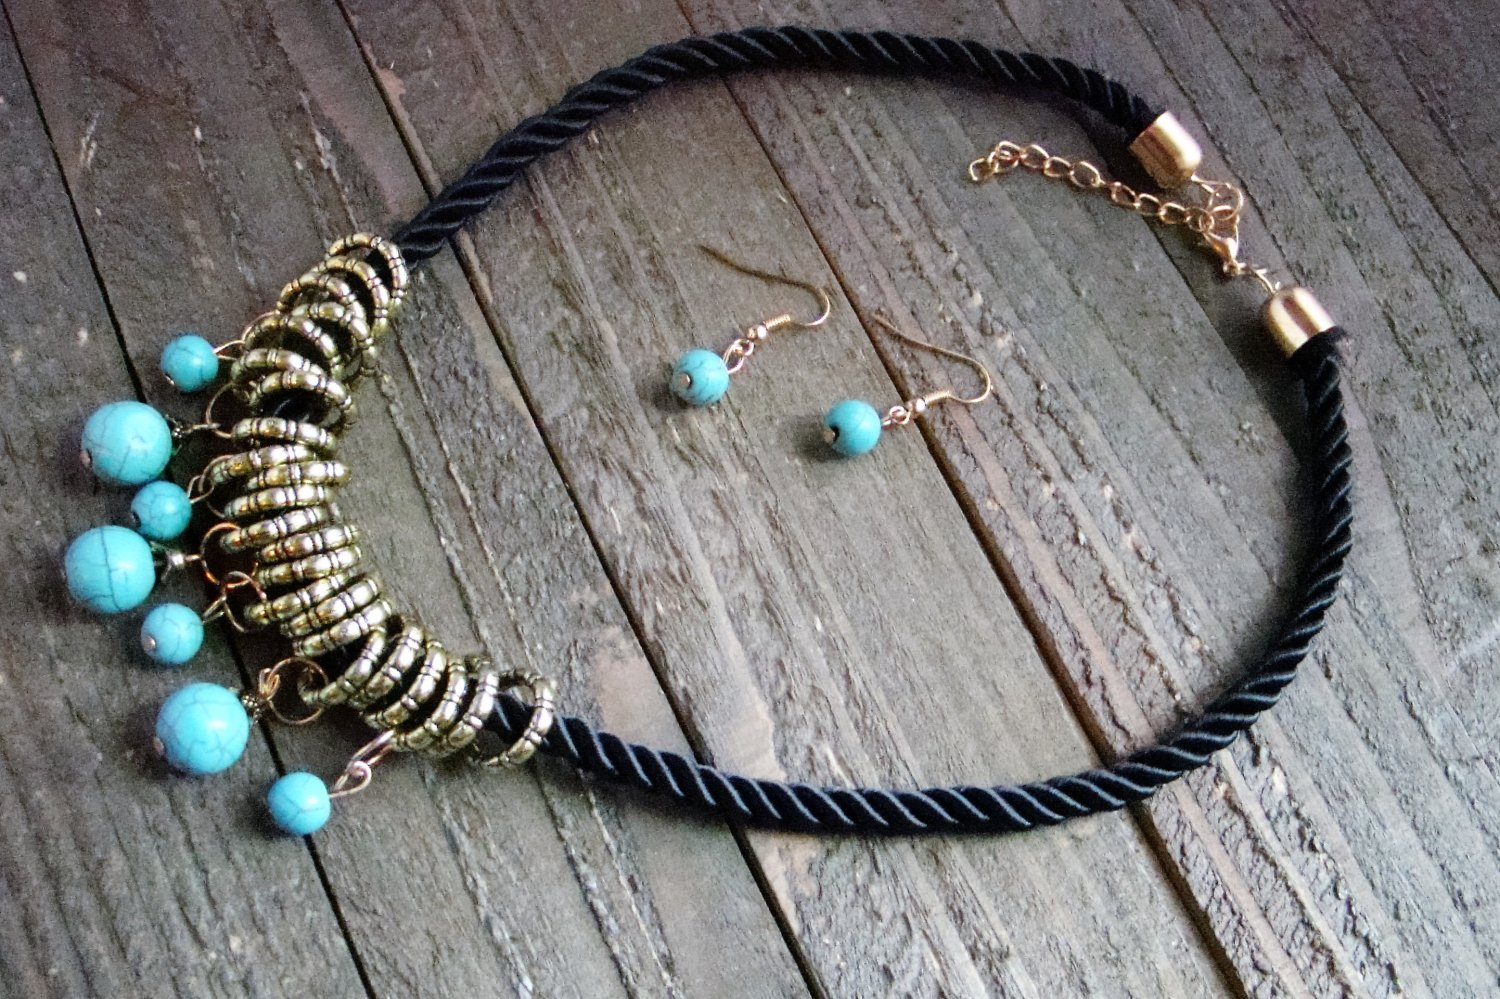 Dangle Turquoise Bead Gold Rings Rope Cord Statement Necklace Earrings Set Boho Fashion Jewelry